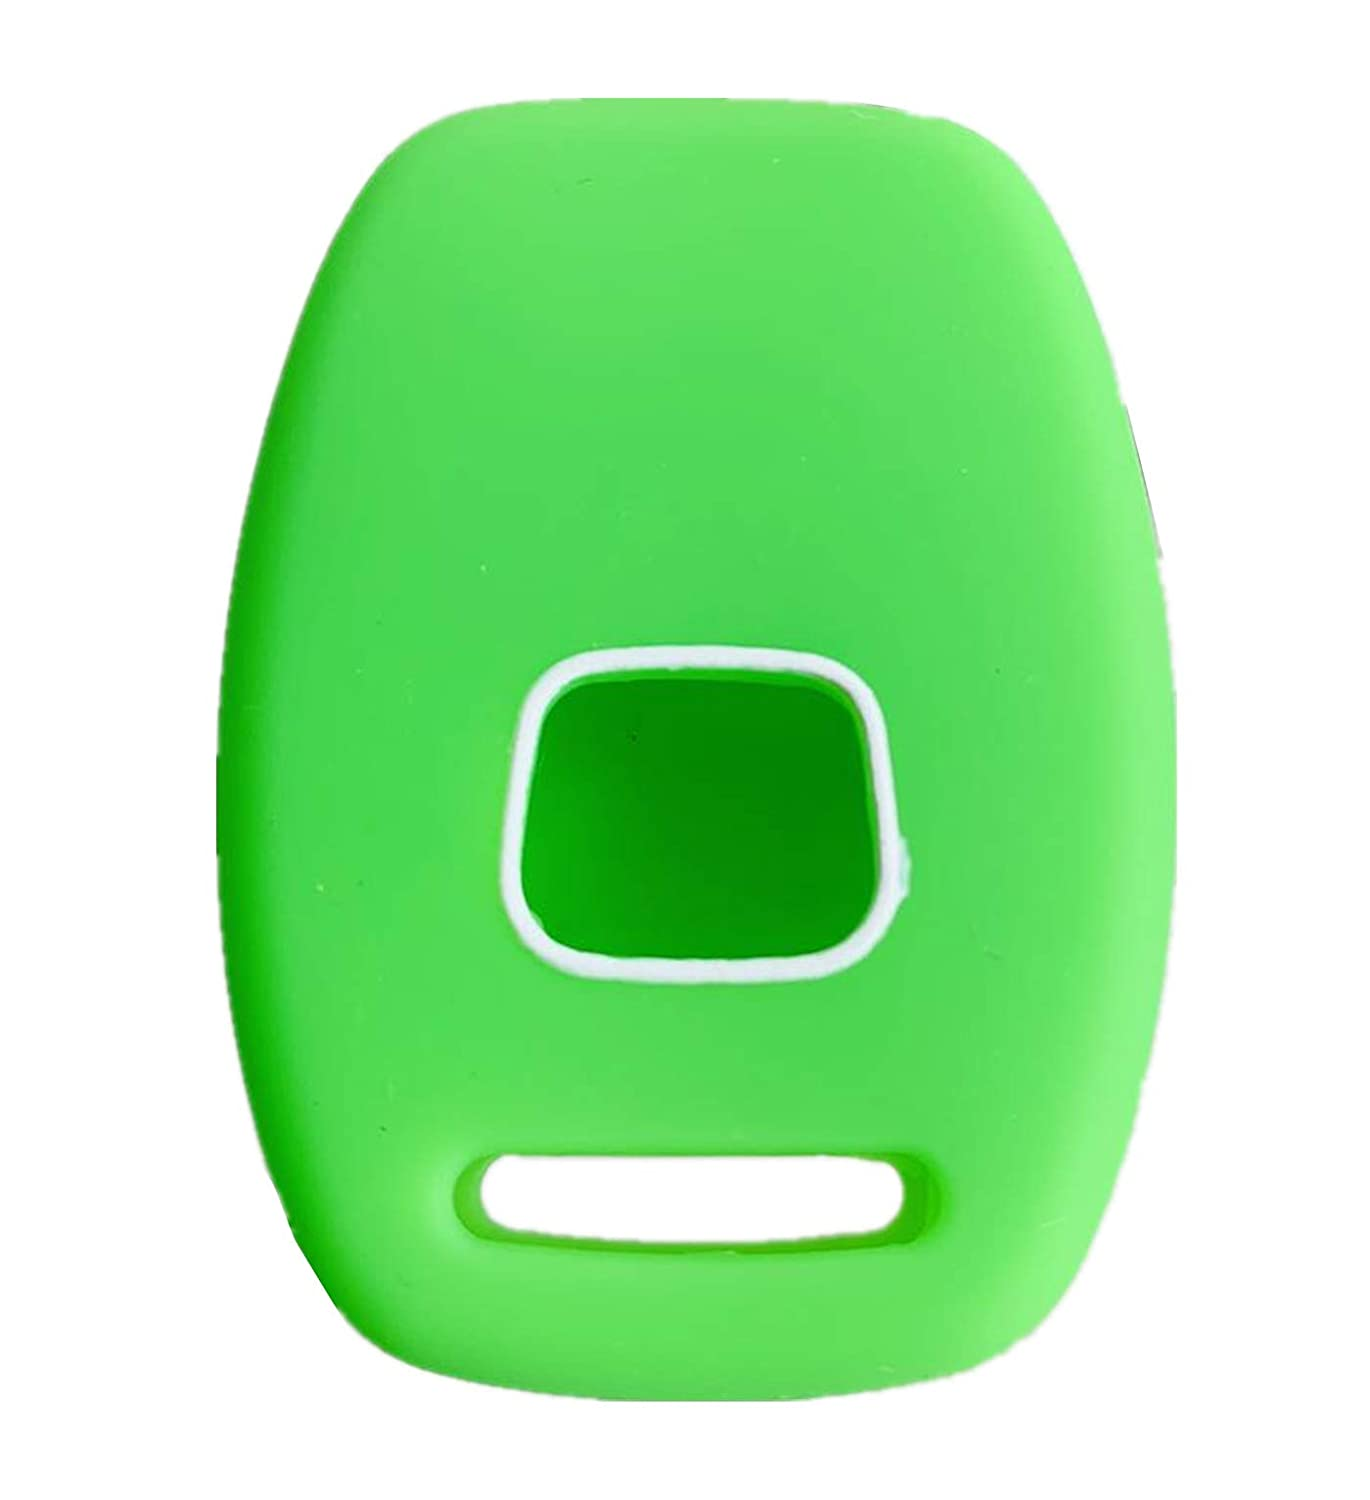 green Rpkey Silicone Keyless Entry Remote Control Key Fob Cover Case protector For Honda Accord Crosstour CR-V CR-Z Civic Fit Insight Odyssey Ridgeline N5F-S0084A OUCG8D-380H-A CWTWB1U545